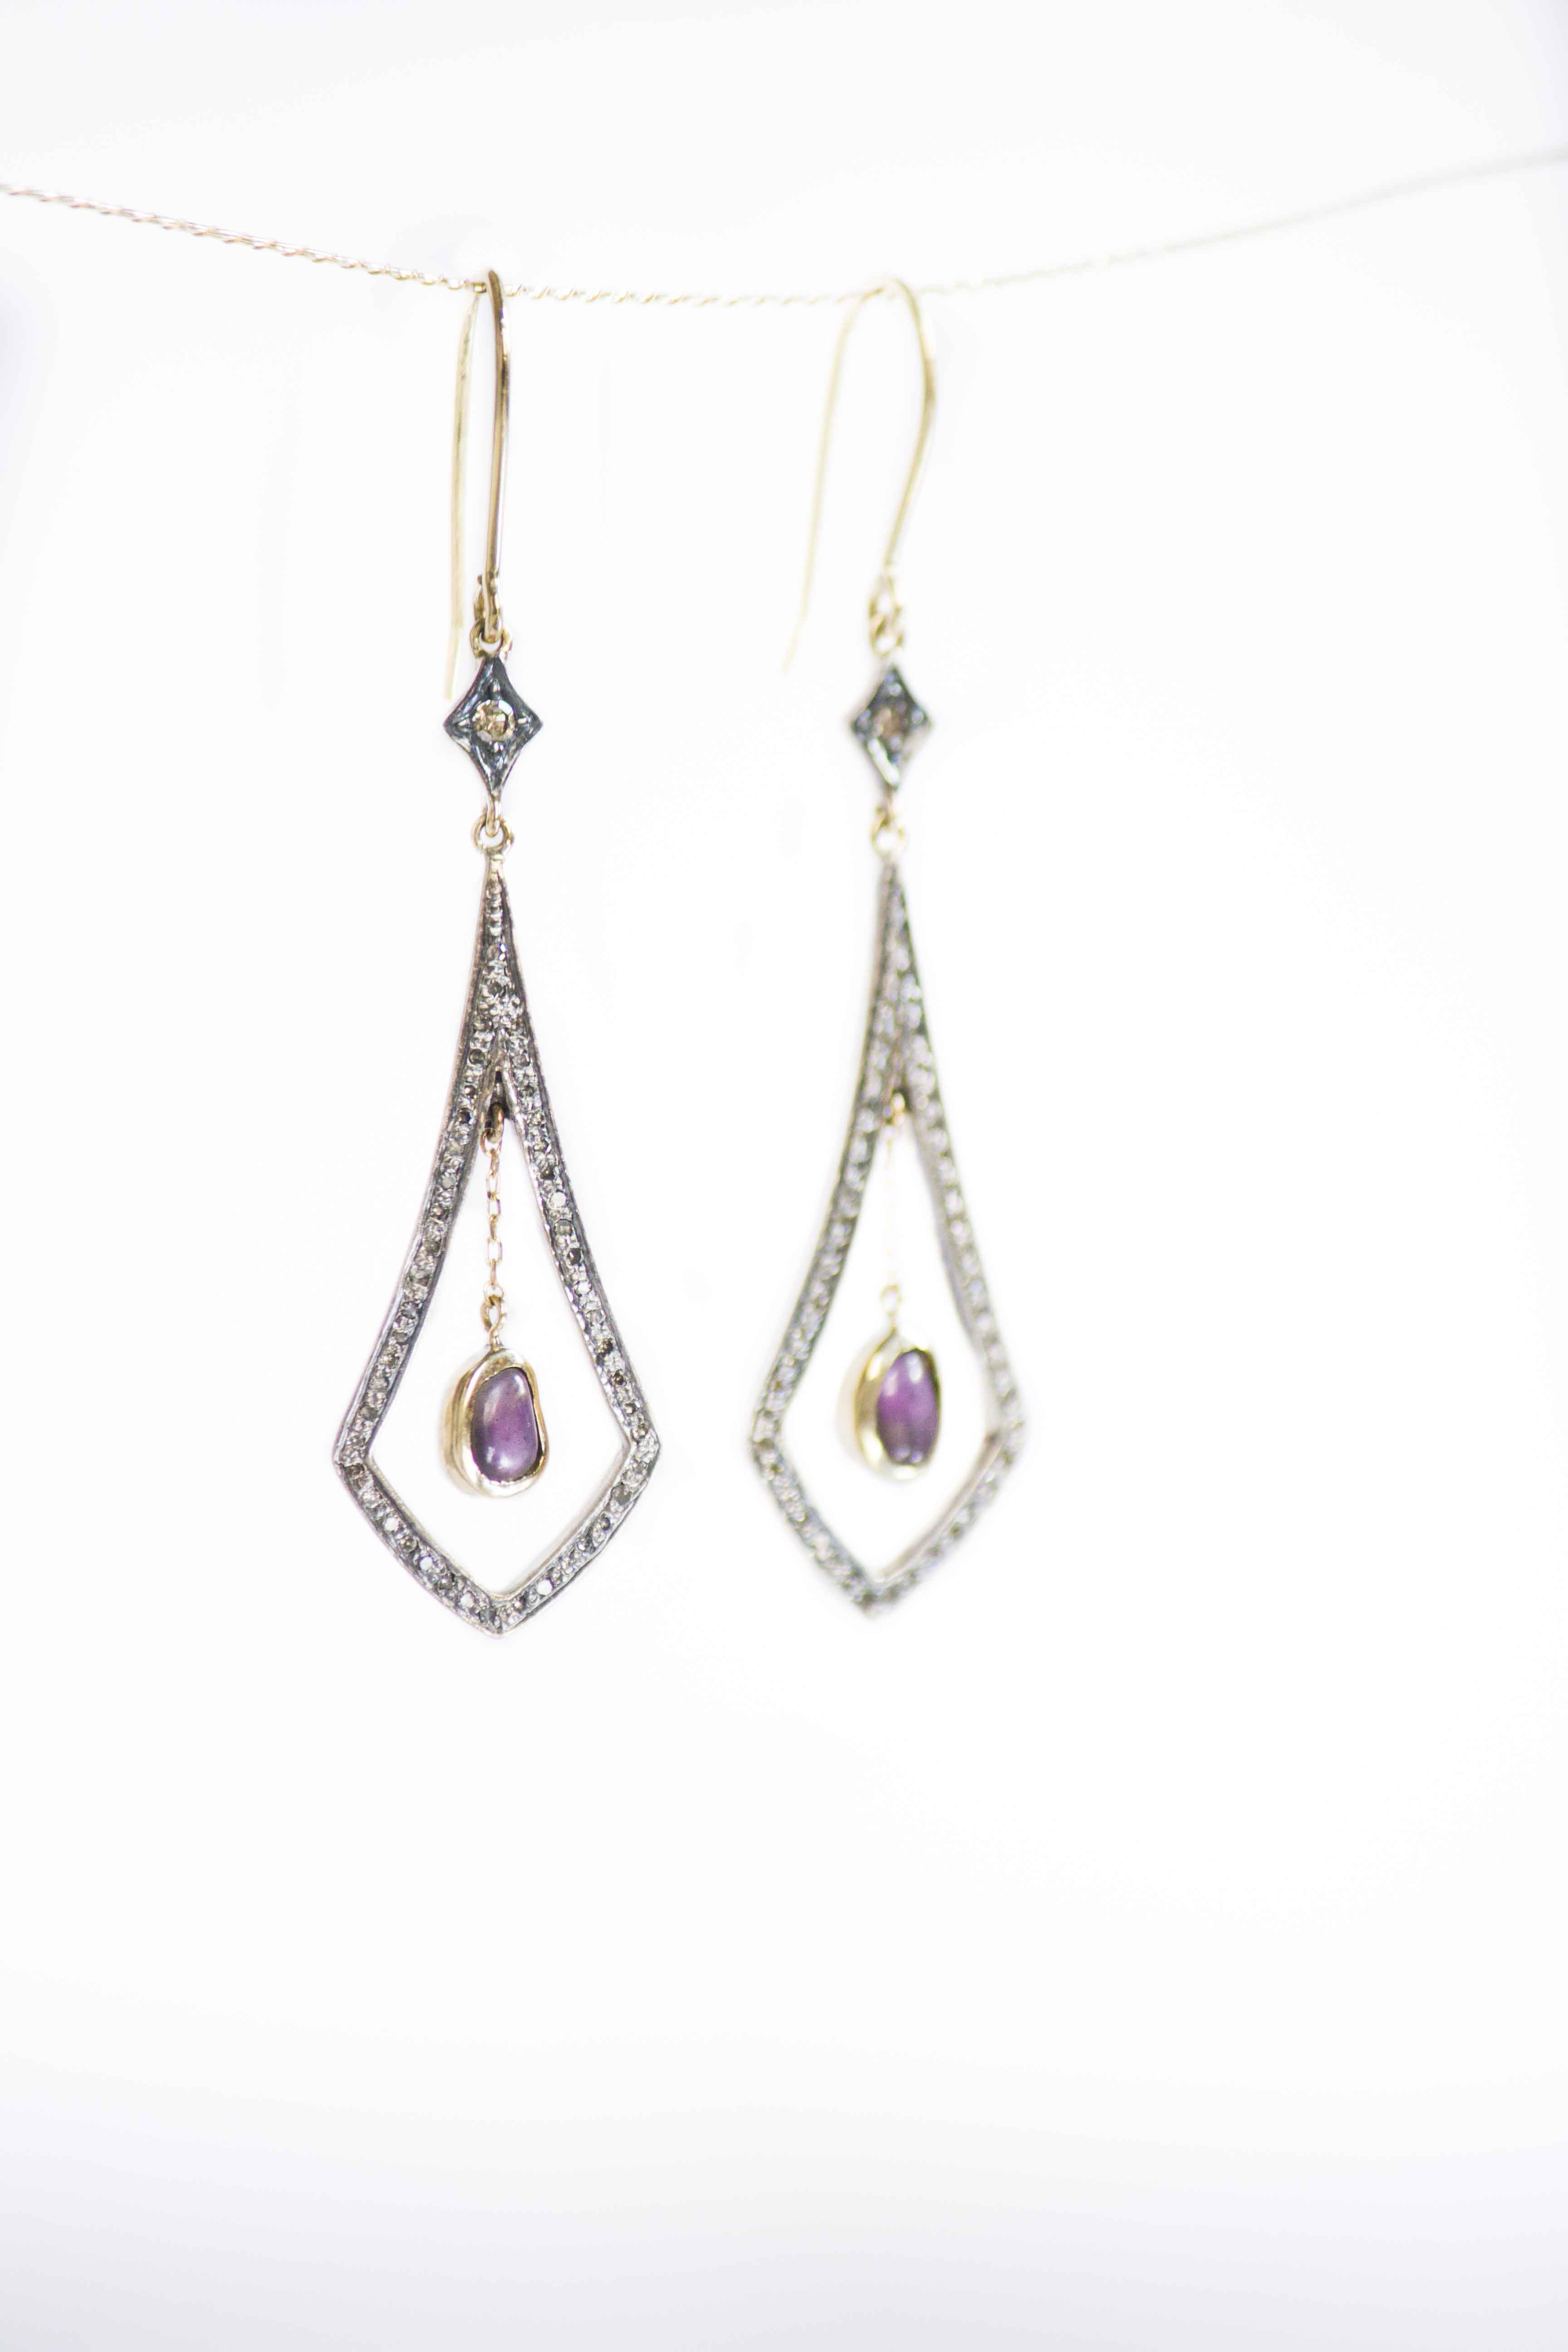 spinel drop earrings Fine drop earrings in 14k yellow gold with diamond pave and rough spinels